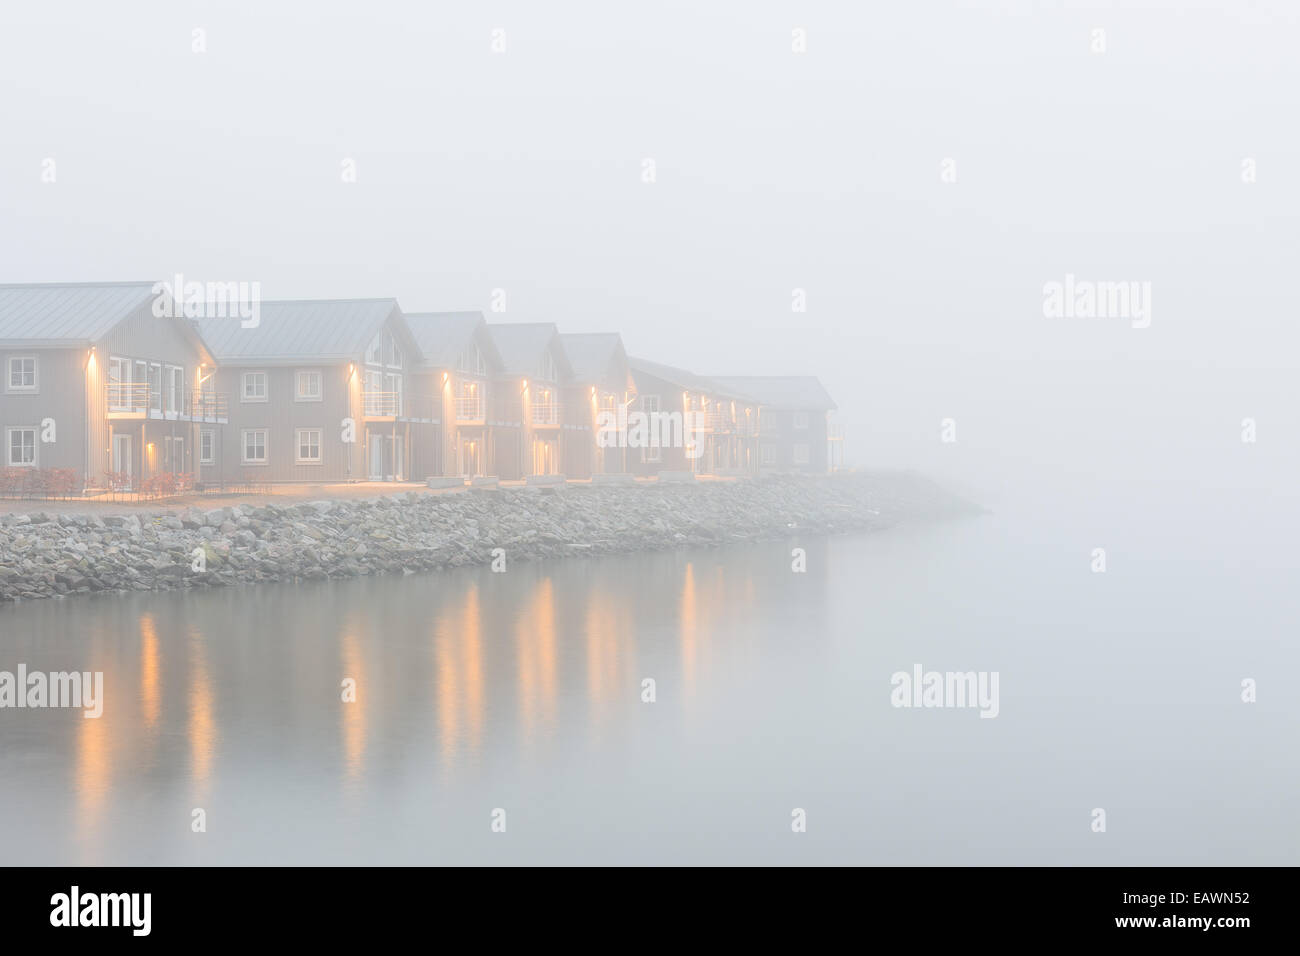 Row of houses along a lake on a foggy evening - Stock Image